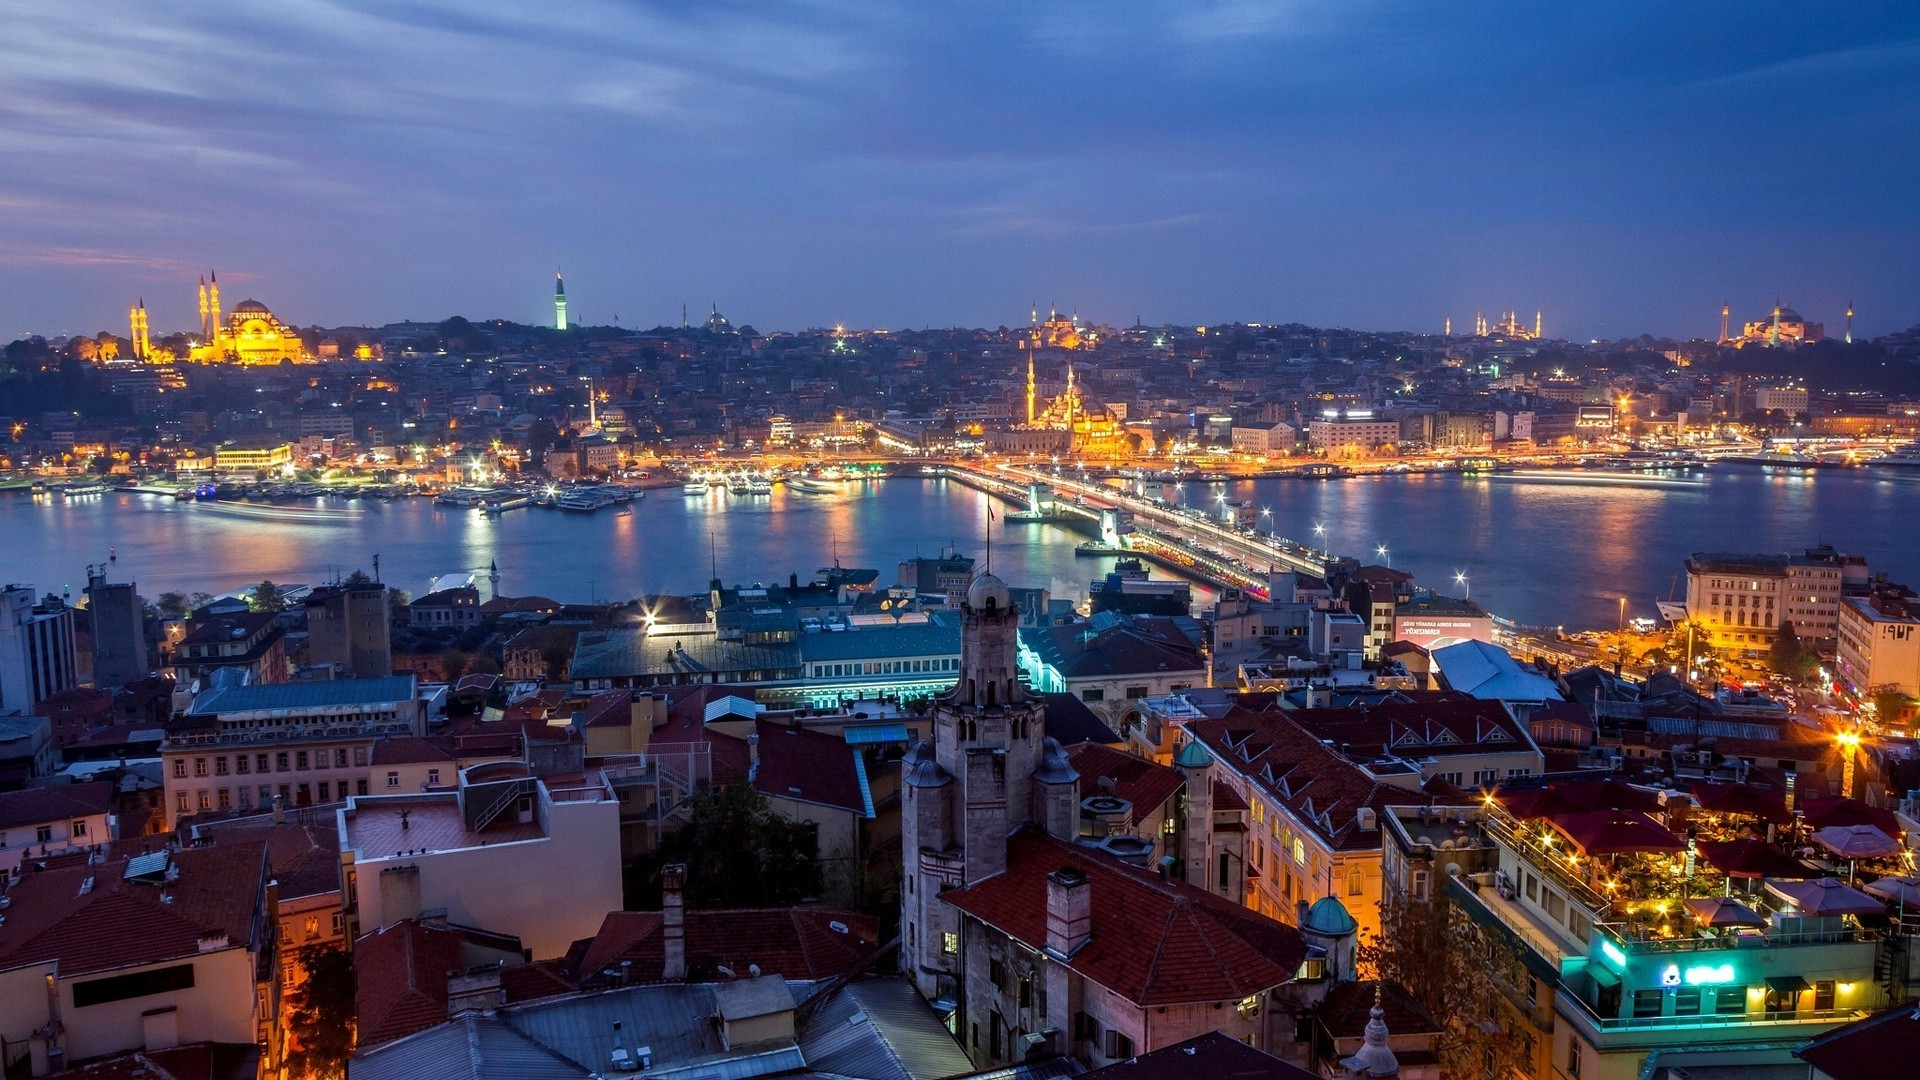 Turkey, Istanbul, view of city at night